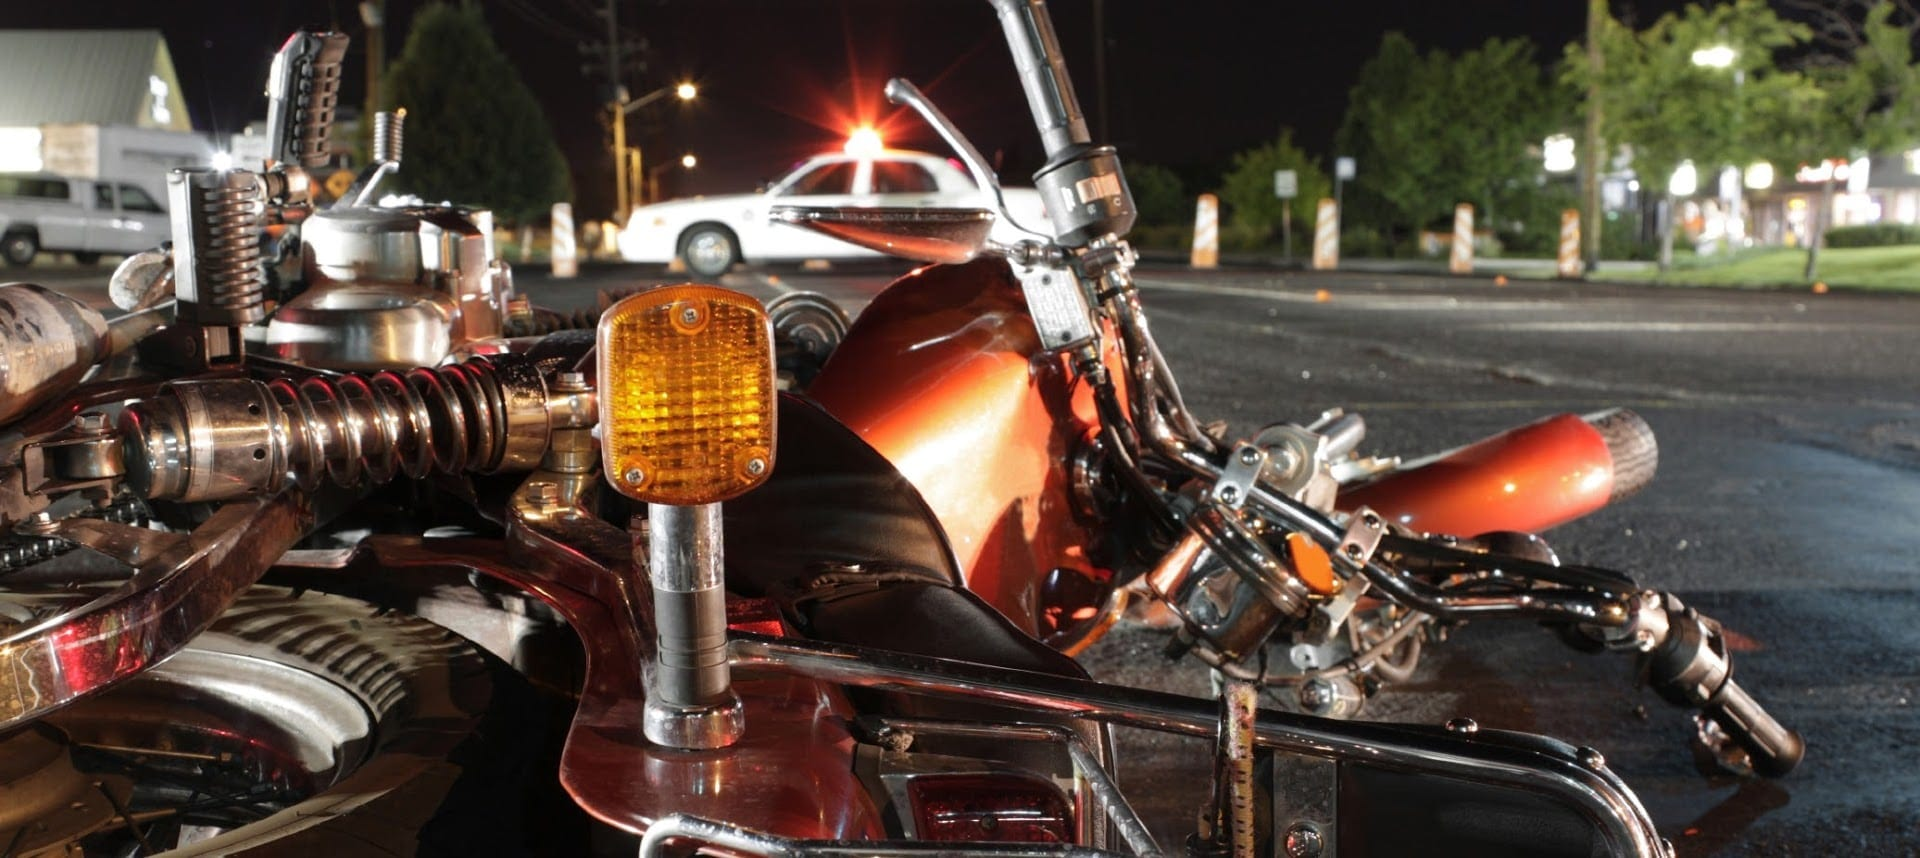 Motorcycle Accident On A City Street At Night Stock Photo